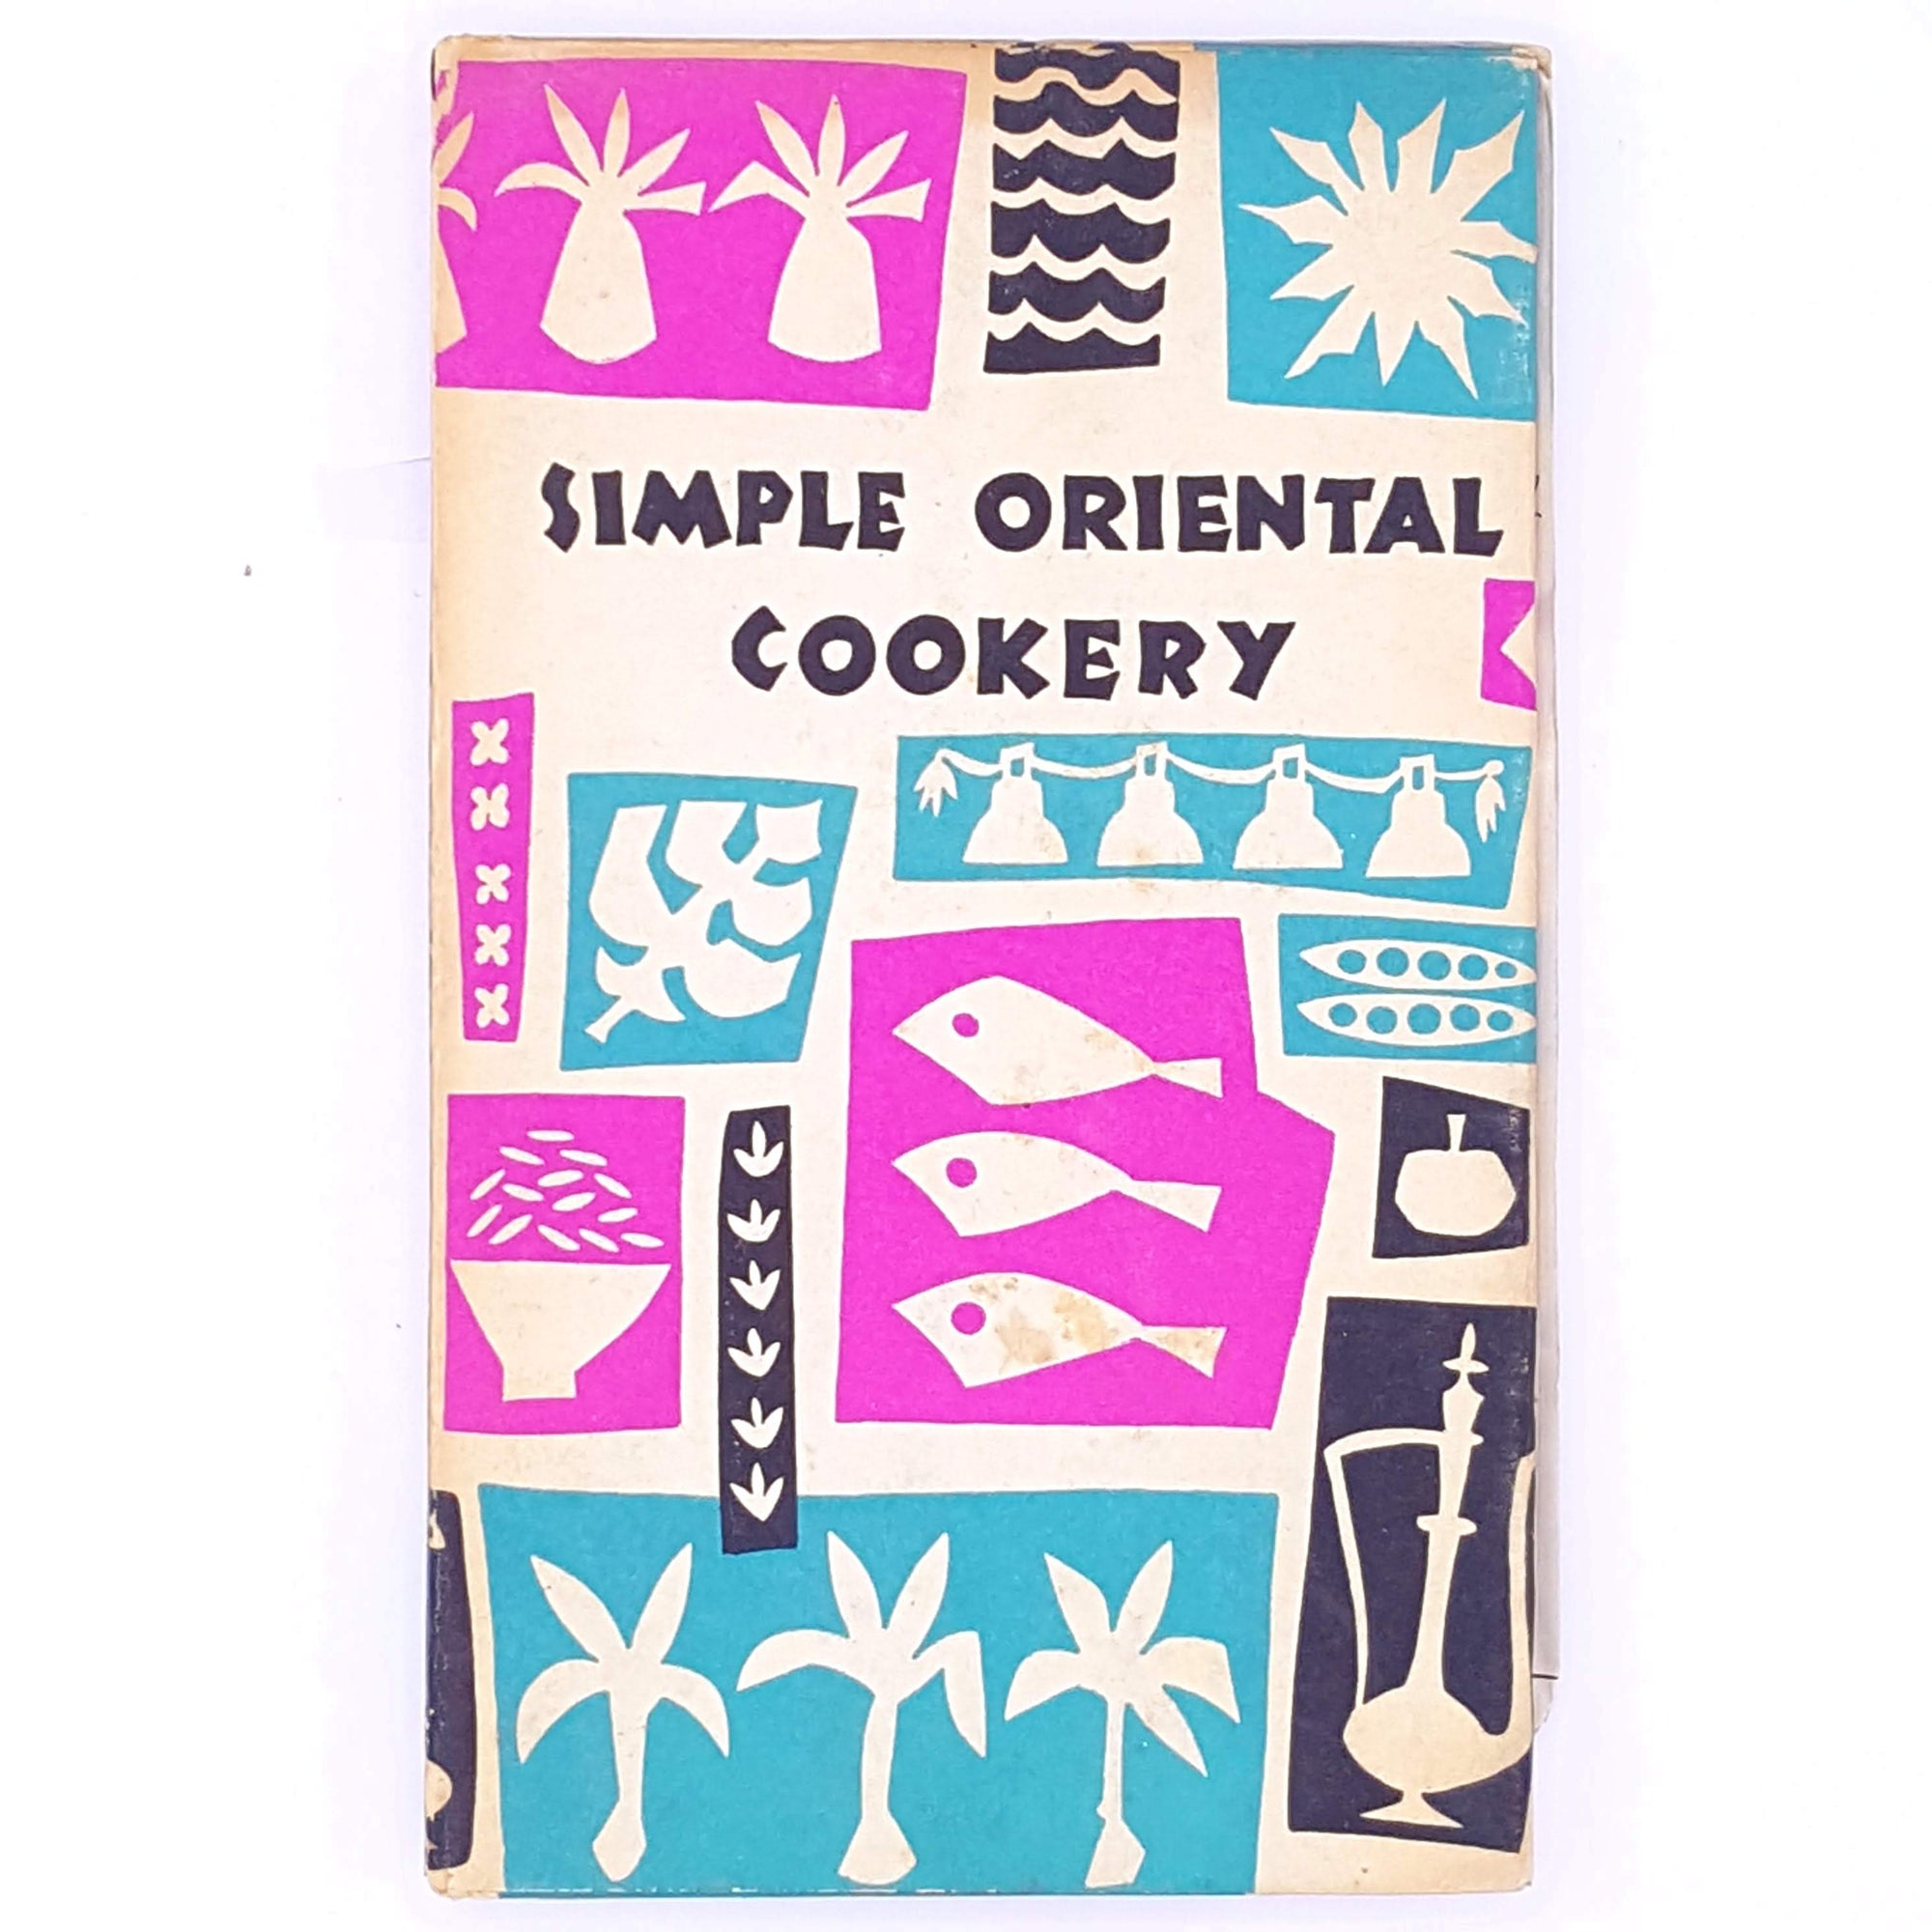 Simple Oriental Cookery